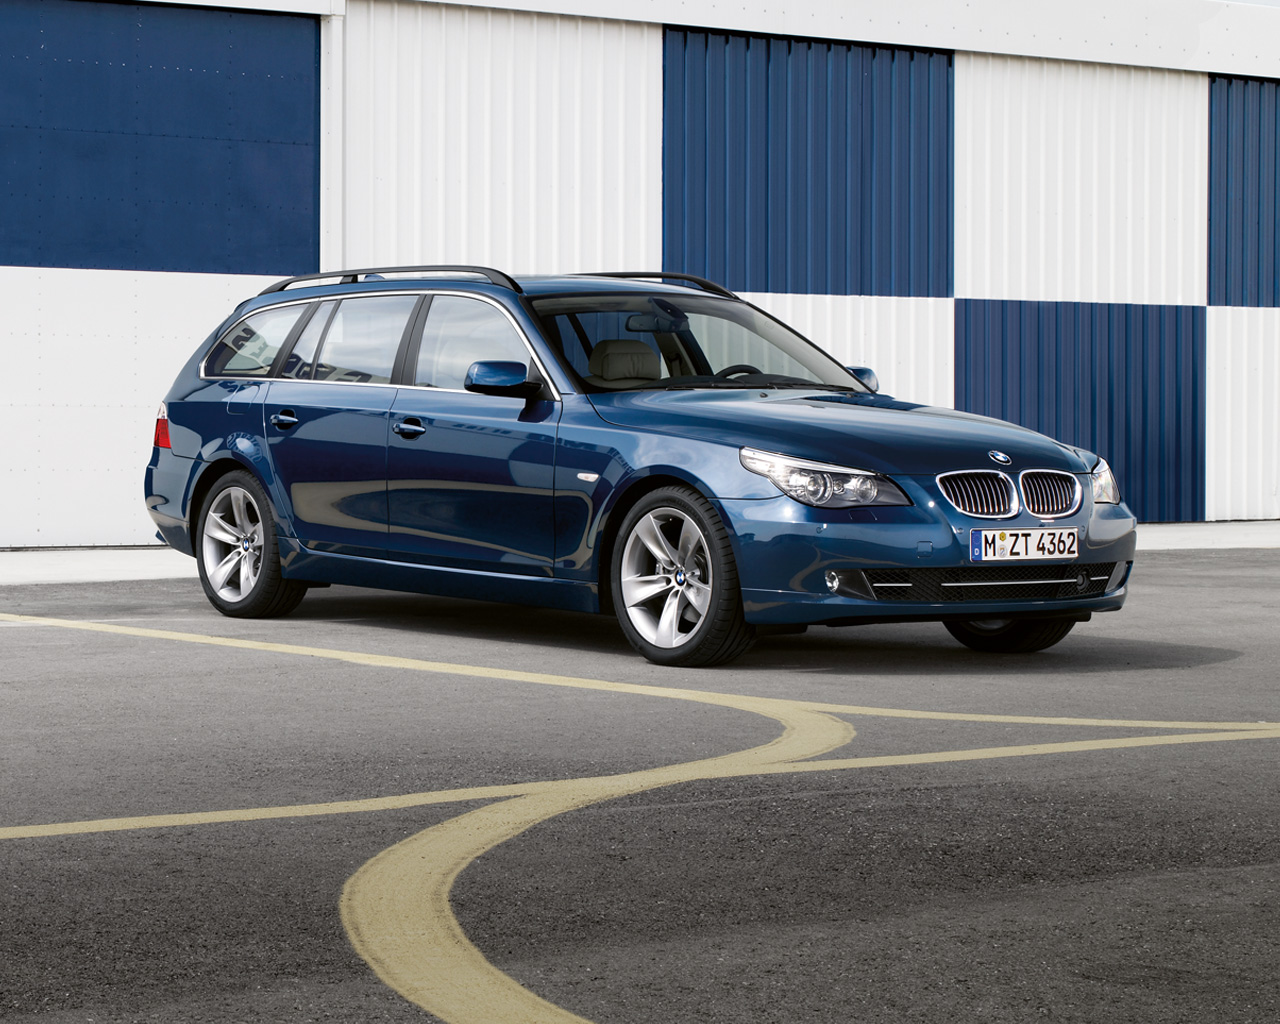 BMW 5 Series Wagon could be replaced by GT